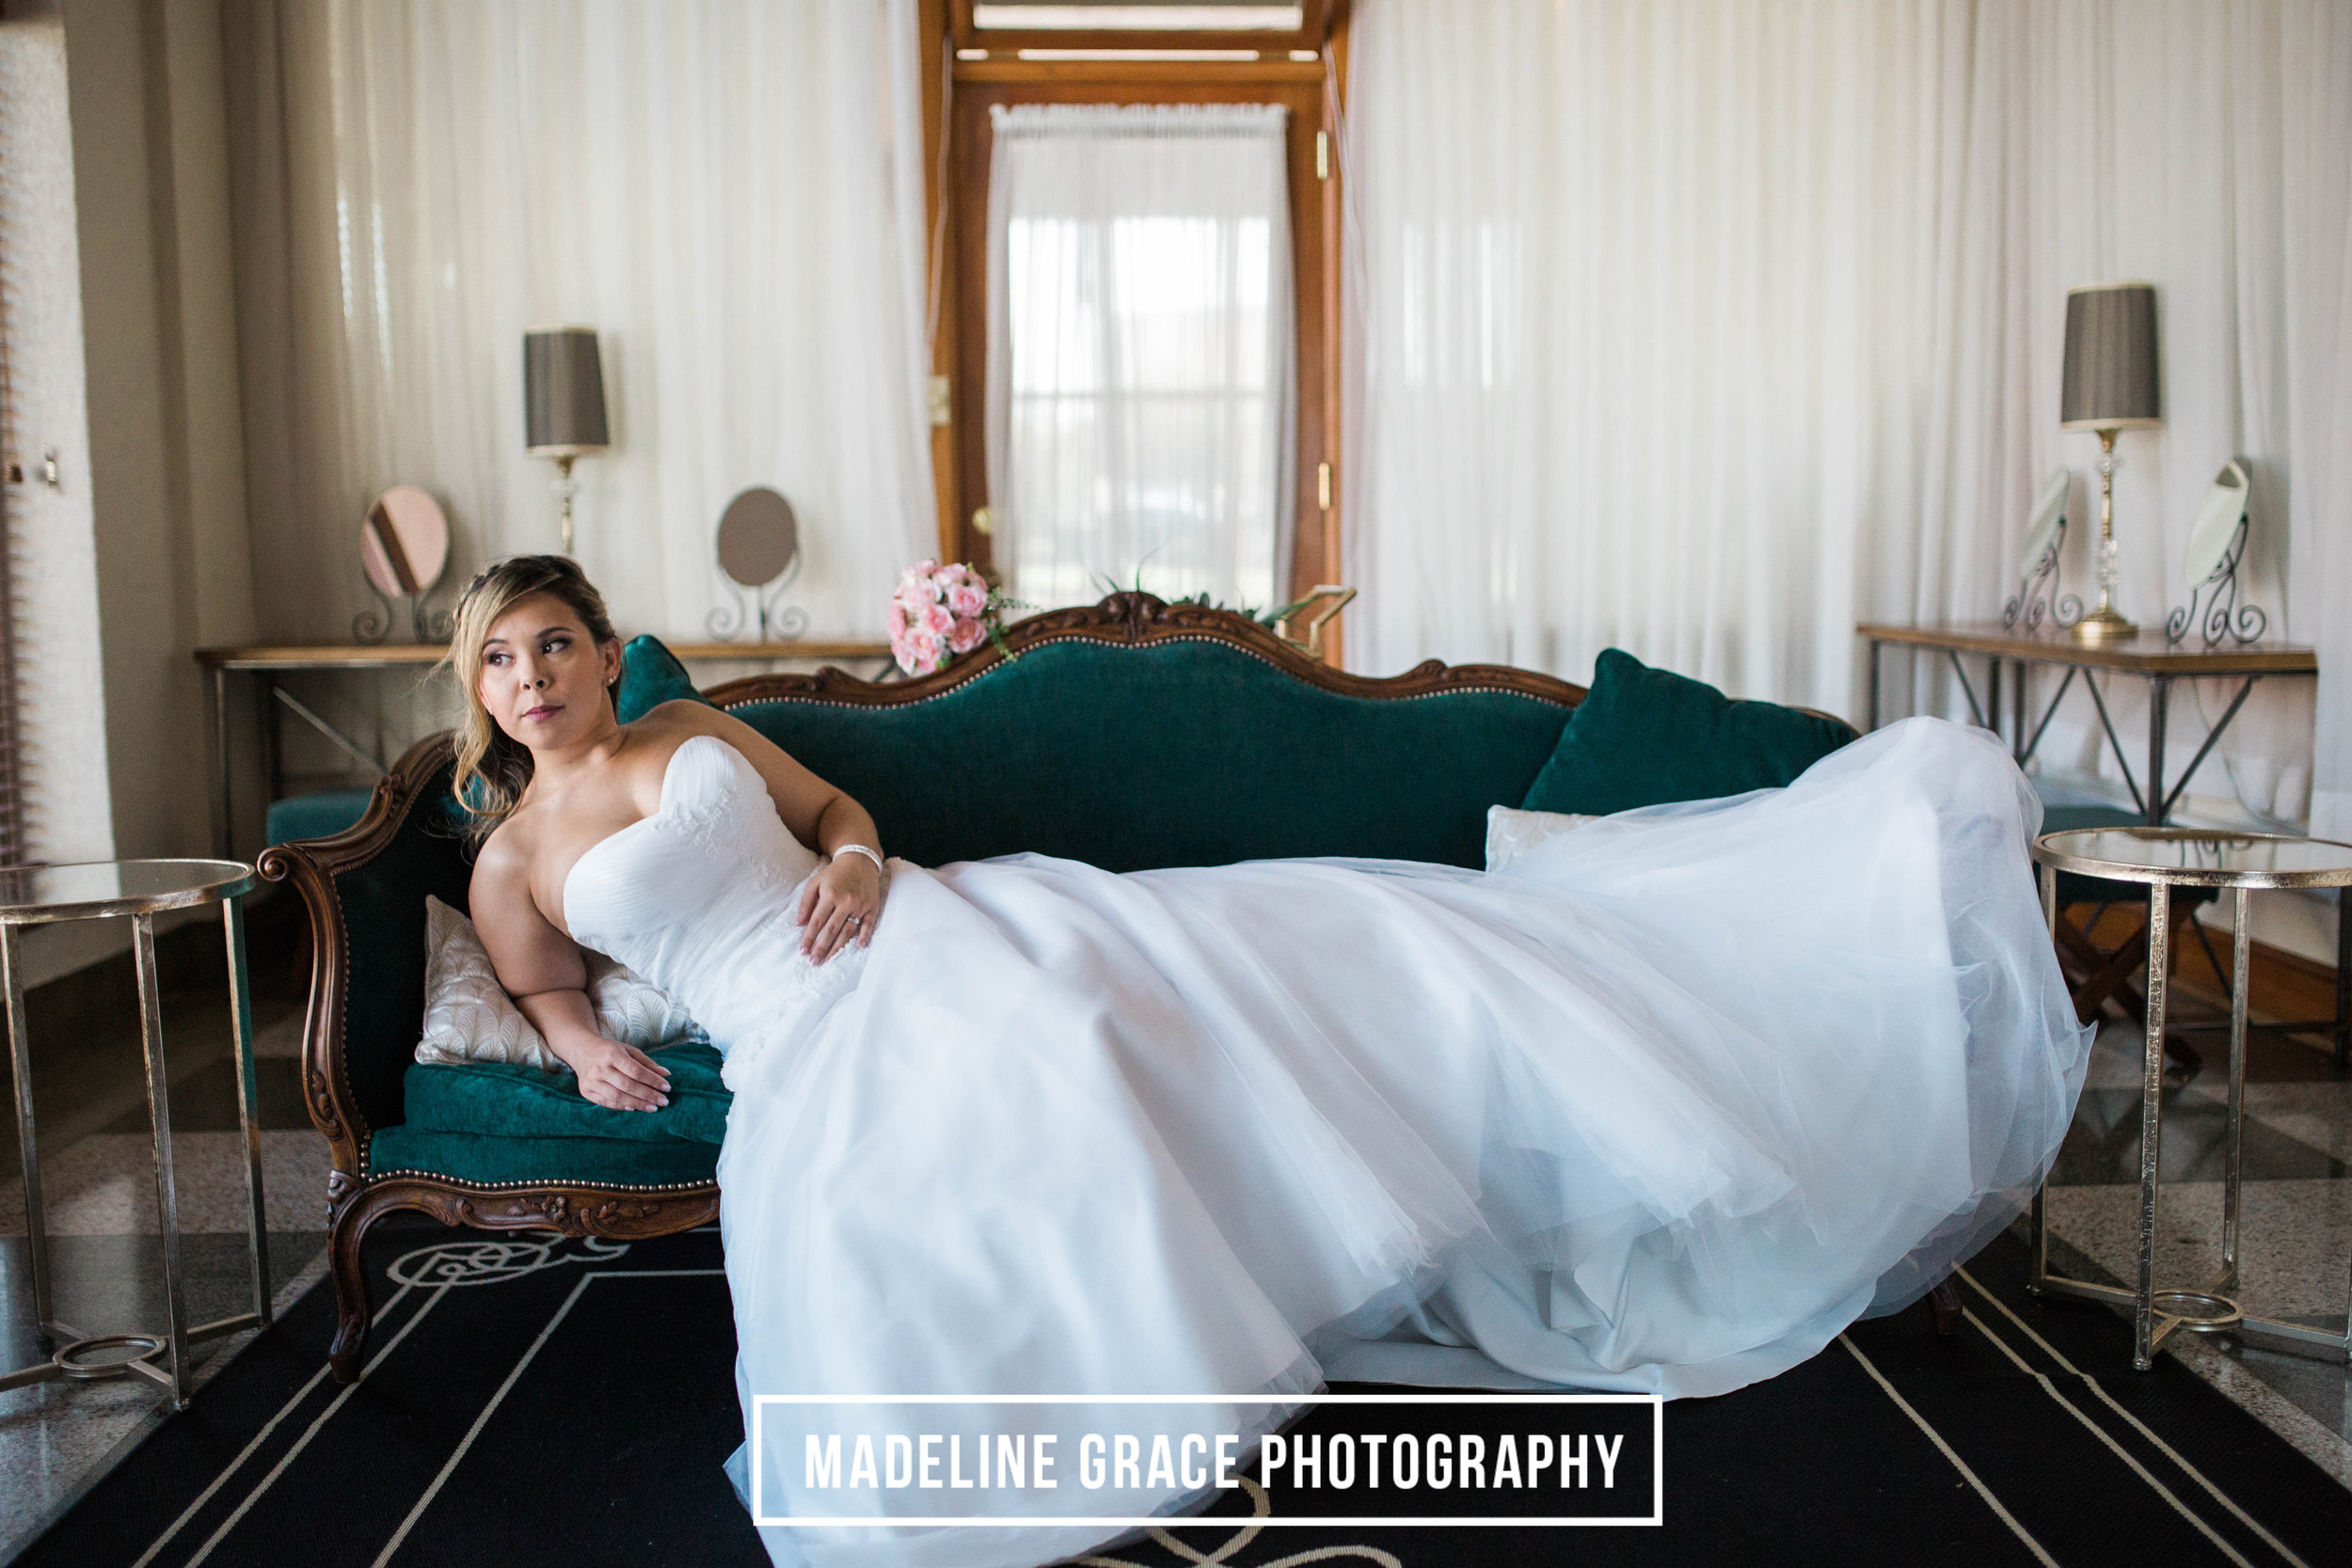 MGP-Sarah-Bridals-62 copy.jpg